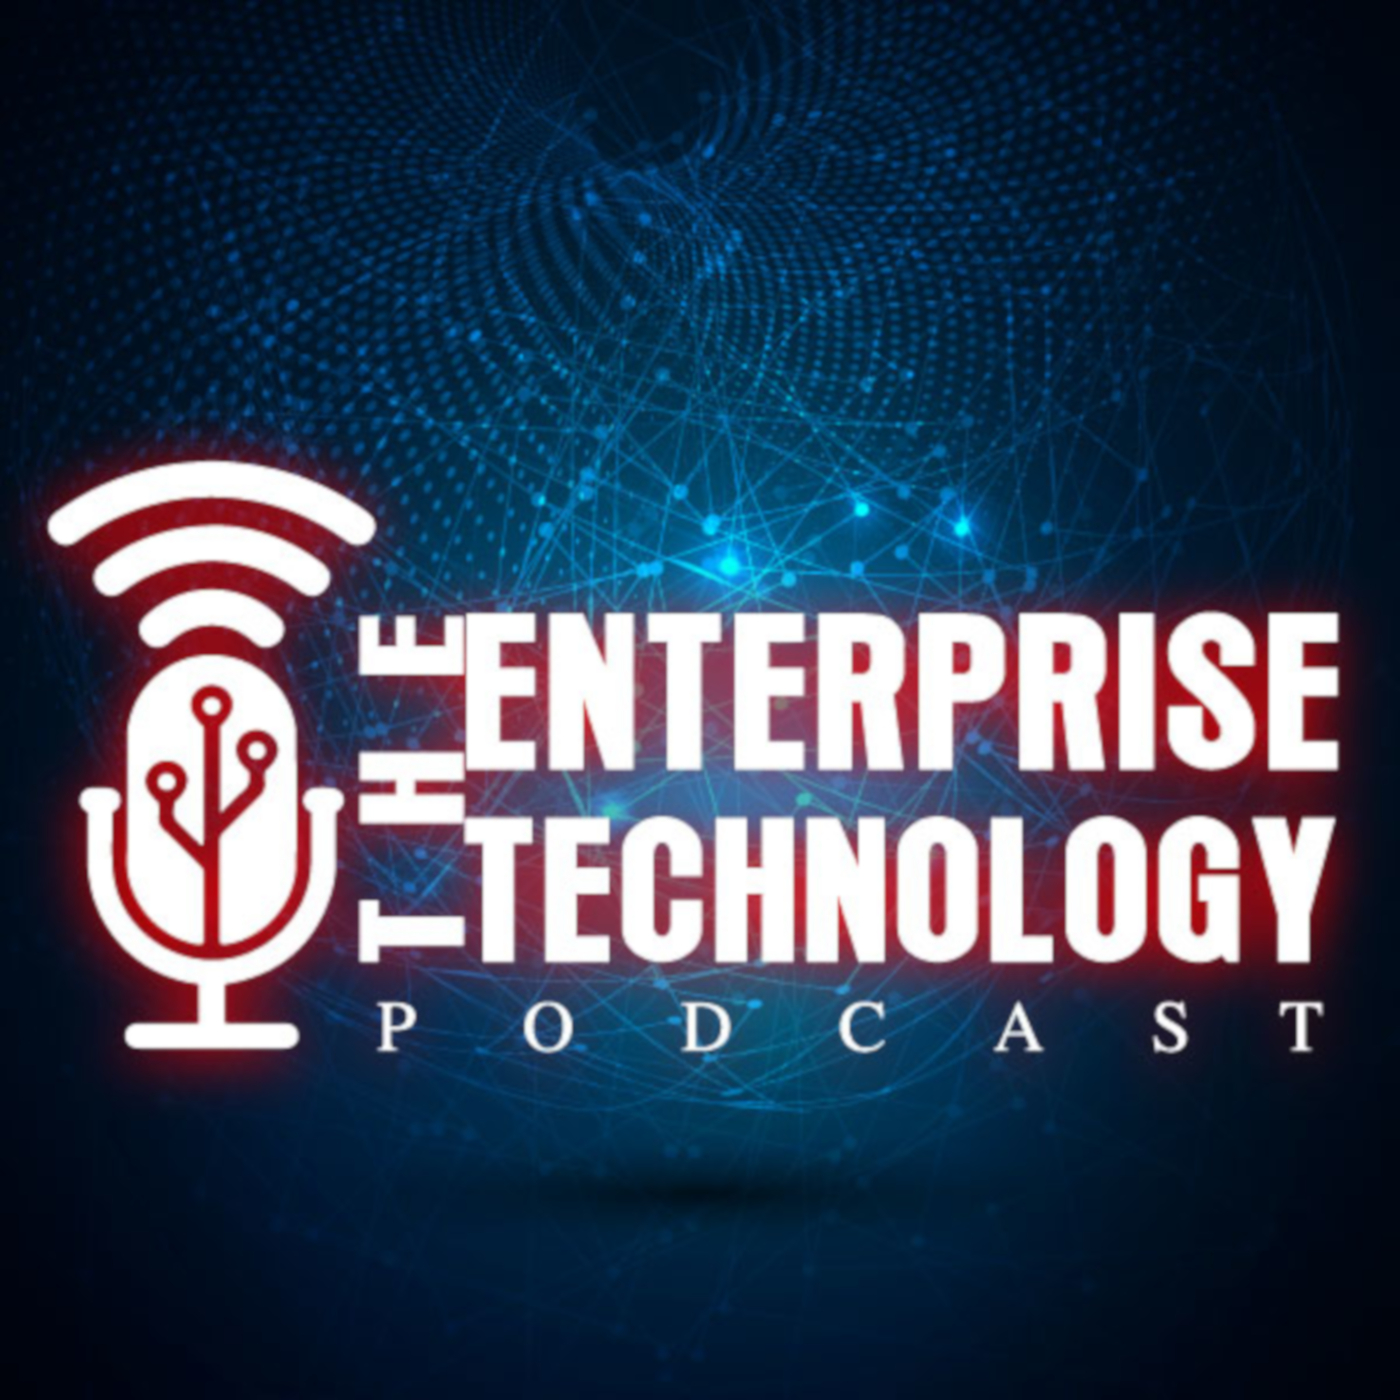 The Enterprise Technology Podcast